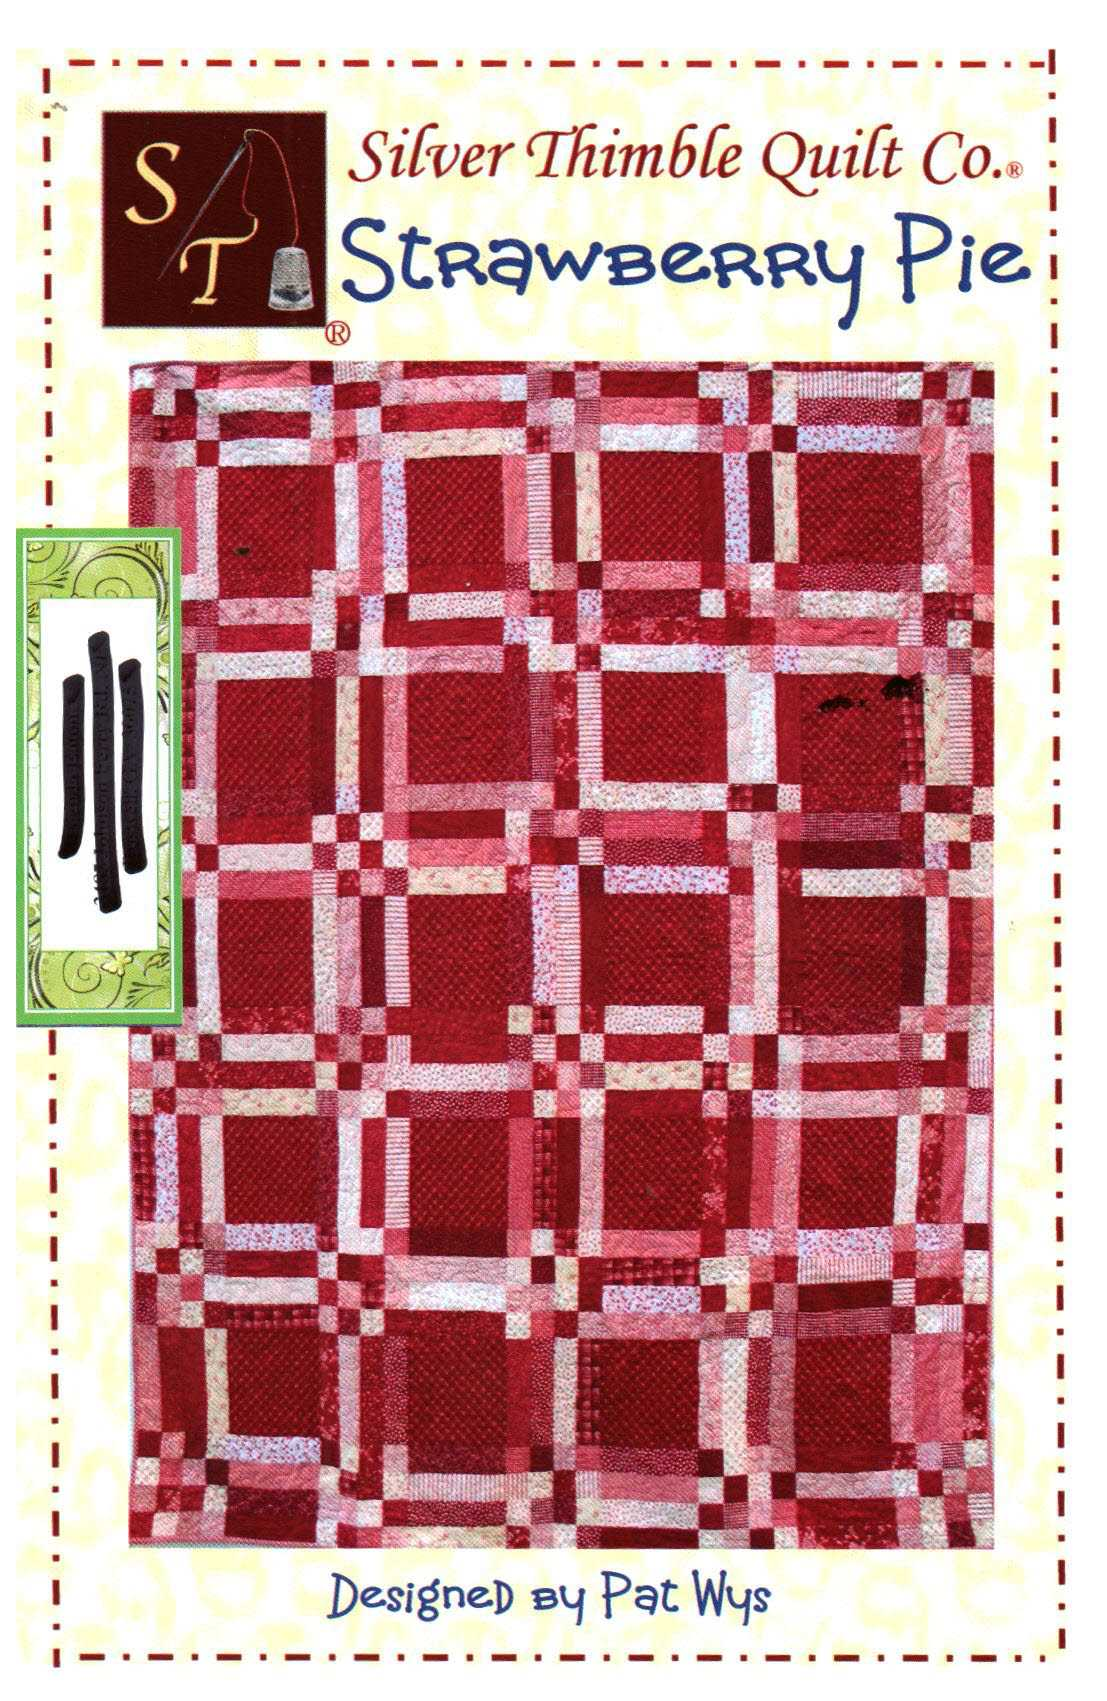 Silver Thimble Quilt Strawberry Pie